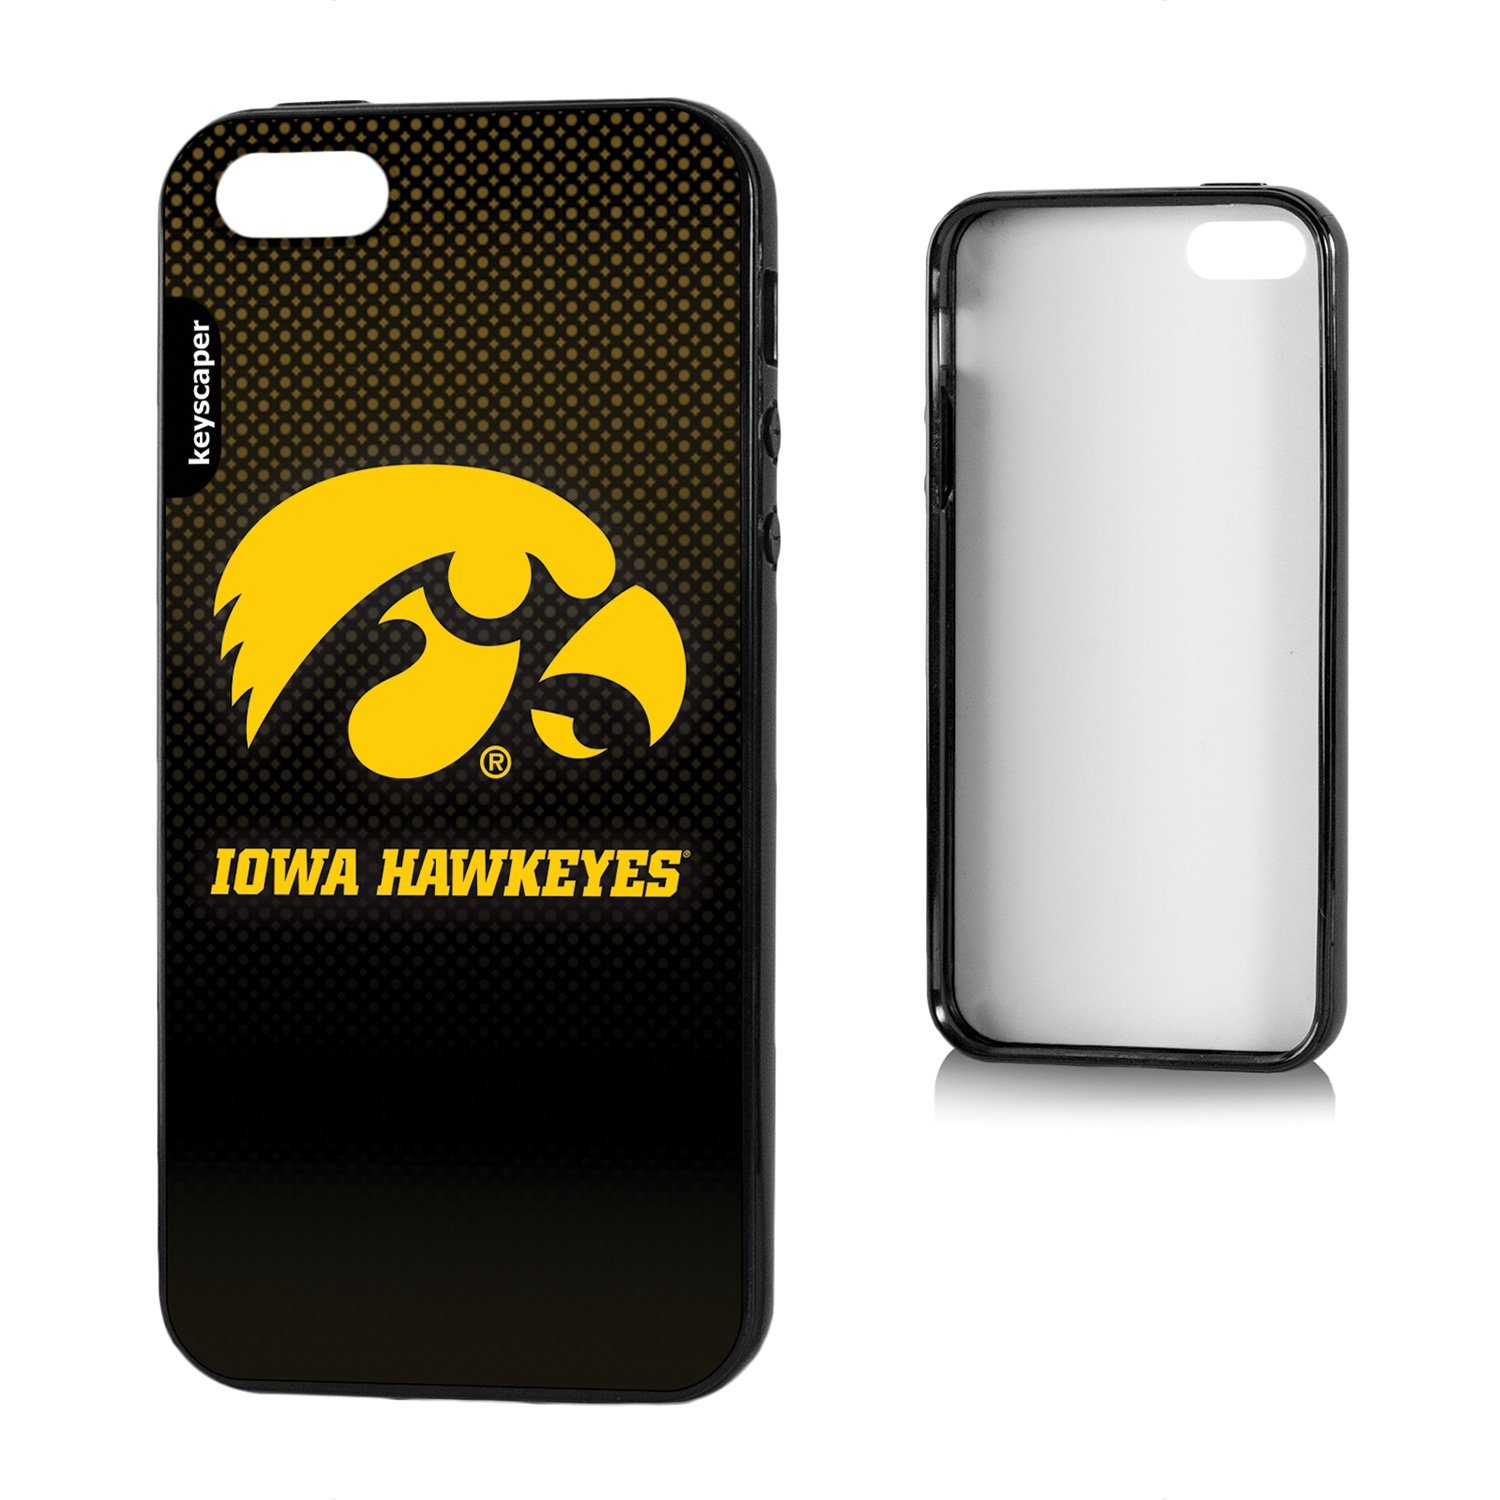 Iowa Hawkeyes iPhone 5 & iPhone 5s Bump Case officially licensed by the University of Iowa for the Apple iPhone 5/5S by keyscaper® Flexible Full Coverage Low Profile